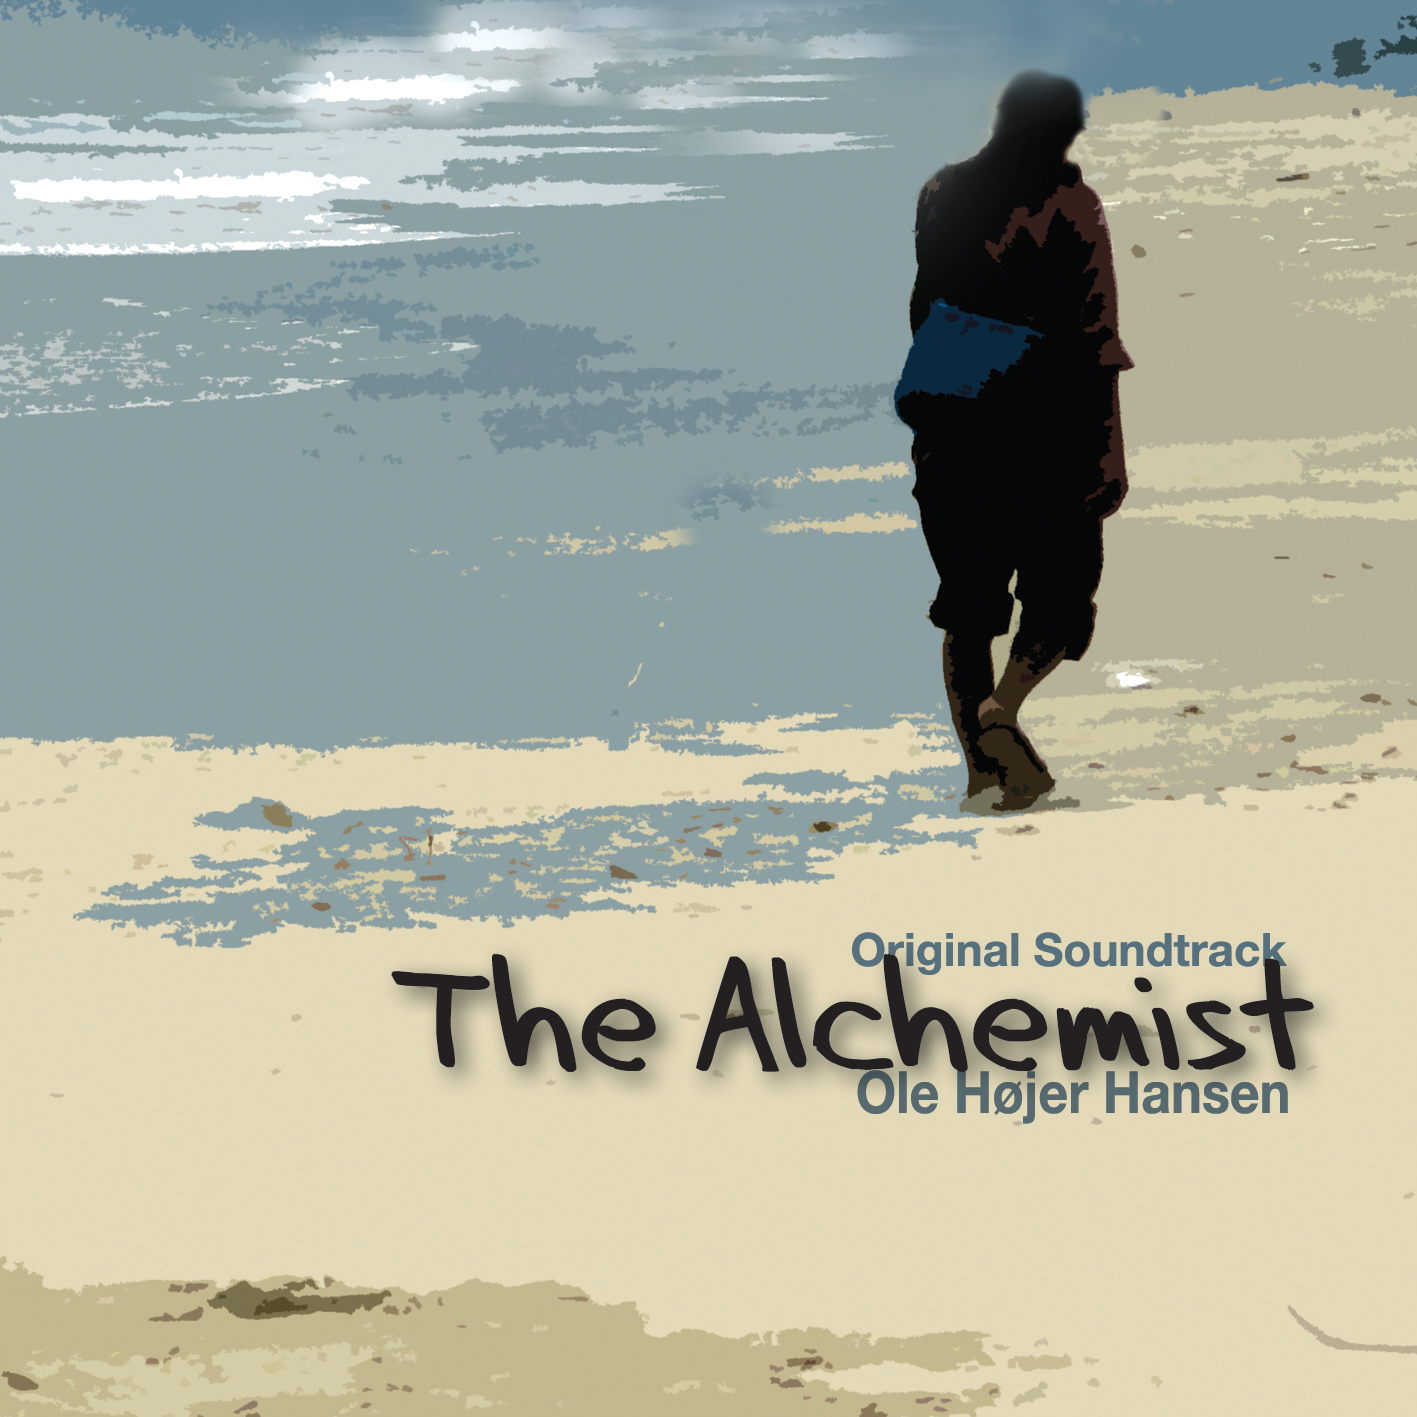 The Alchemist | Soundtrack